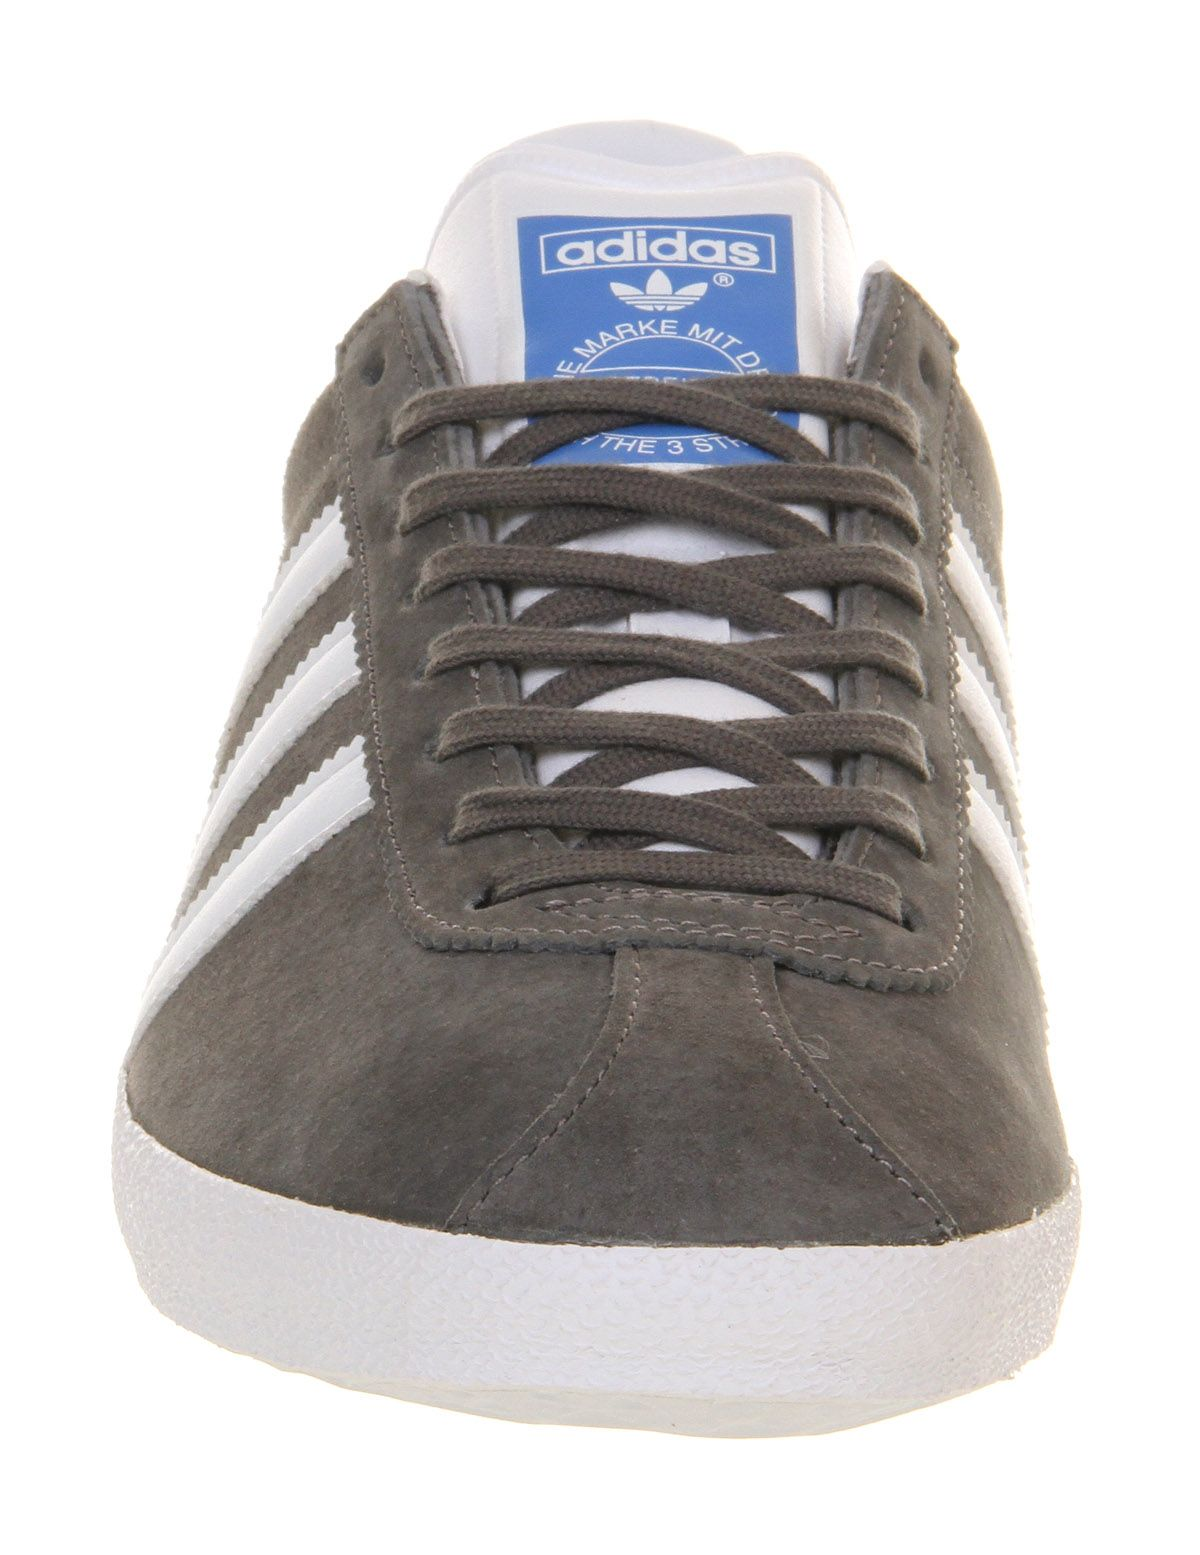 42ec389799f45 Adidas Gazelle Og Sharp Grey White - Unisex Sports | Adidas ...